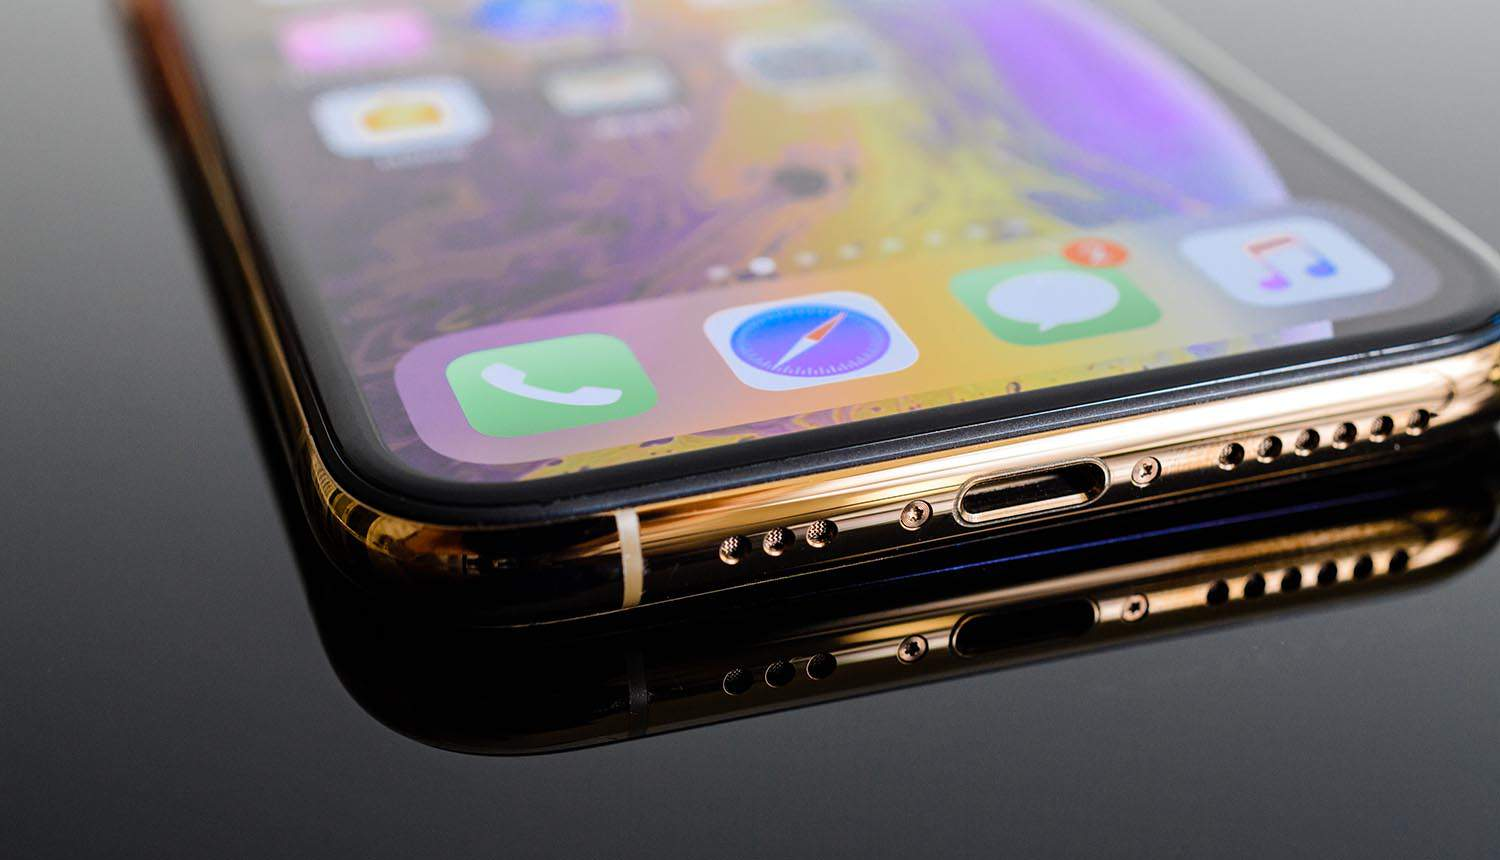 iPhone close up showing privacy update impact on digital advertising